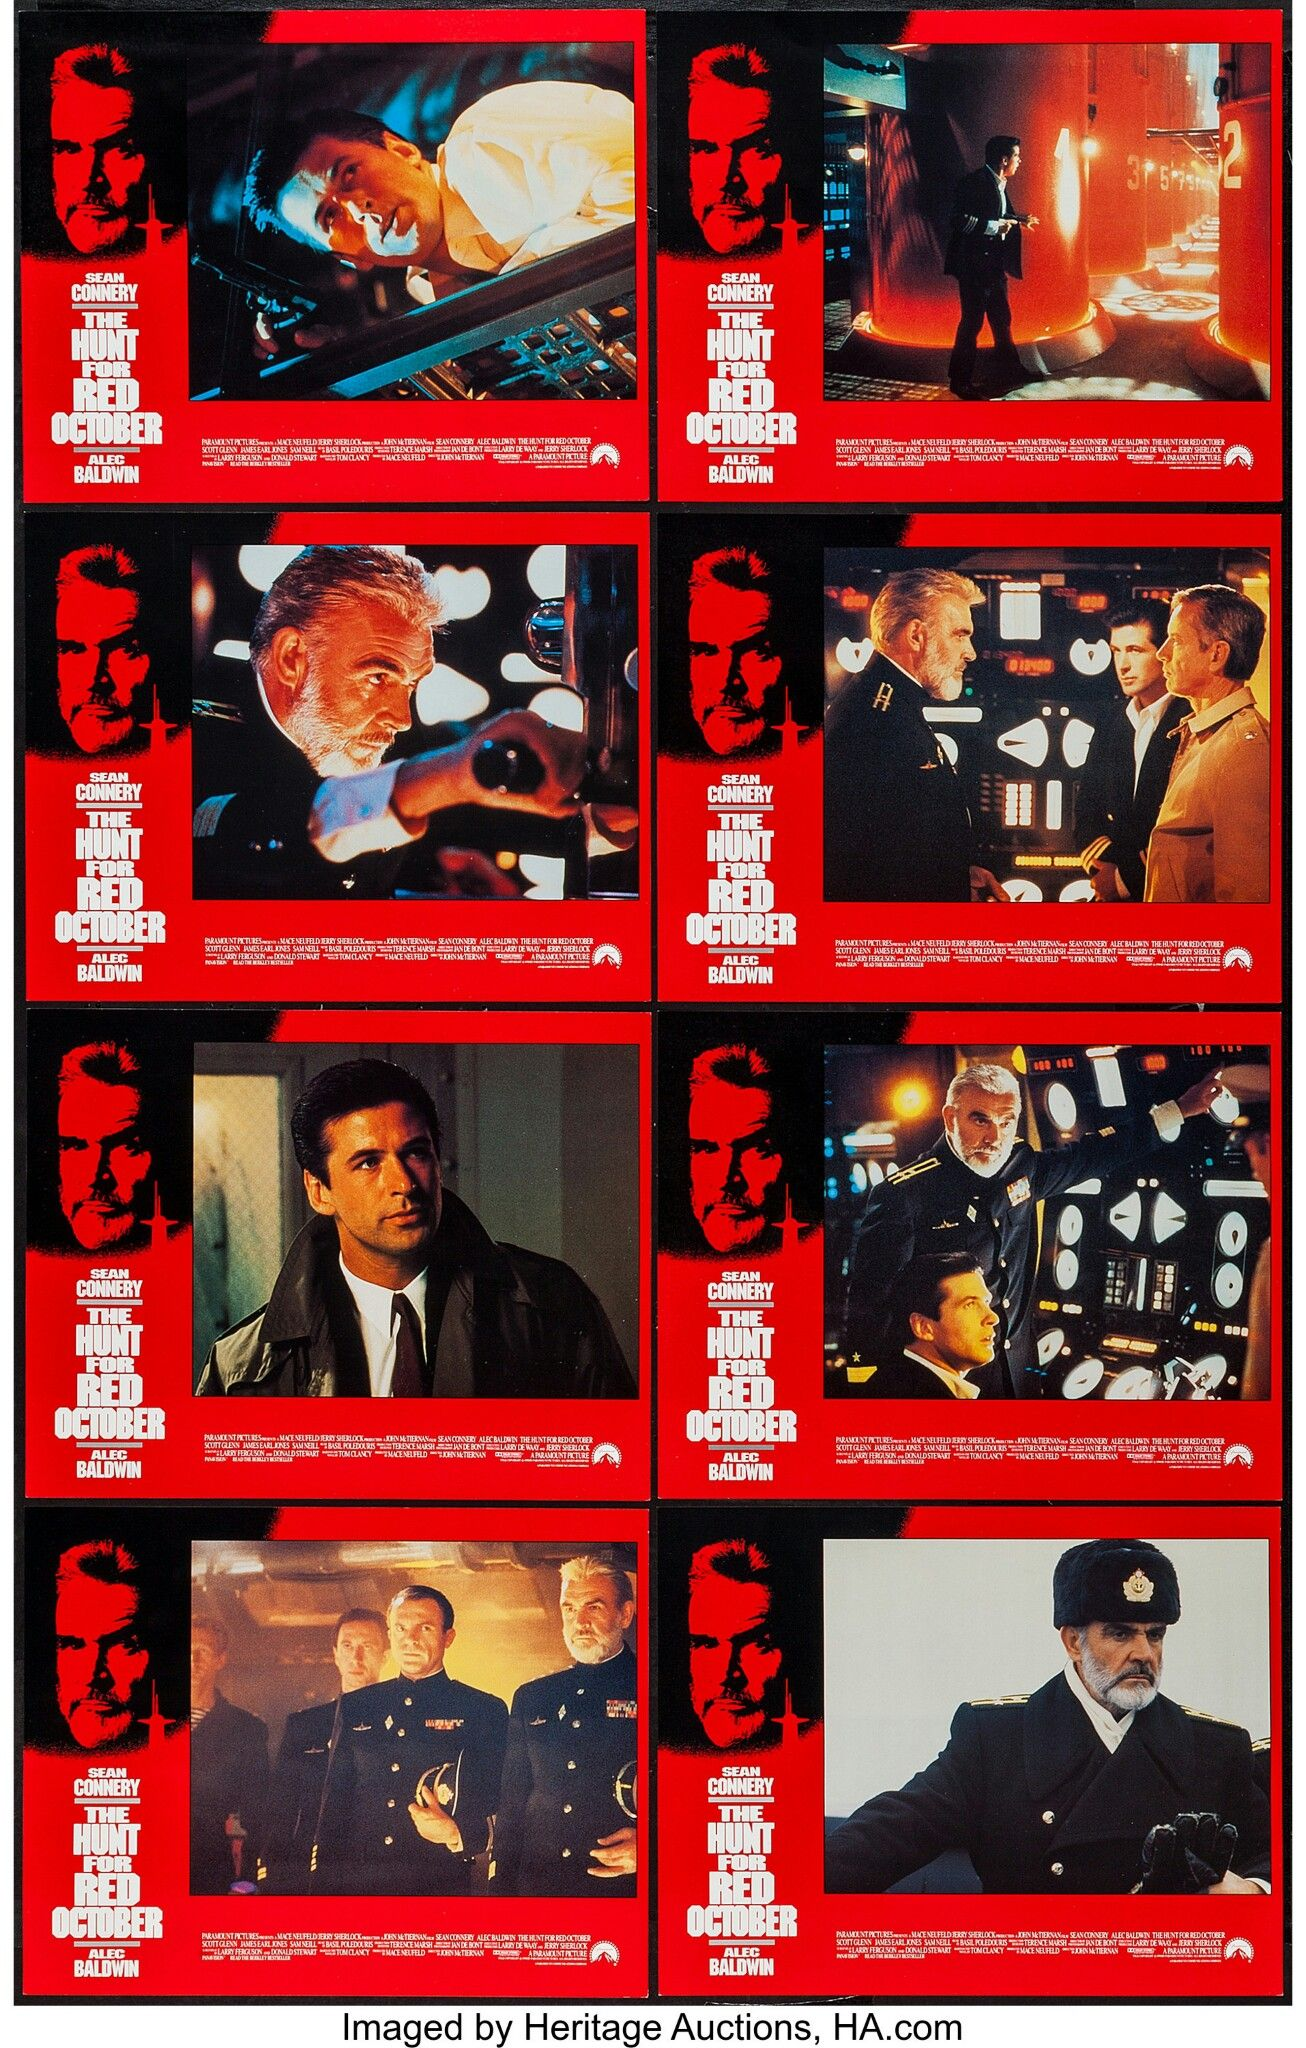 THE HUNT FOR RED OCTOBER (1990) Movie lobby cards, Lobby